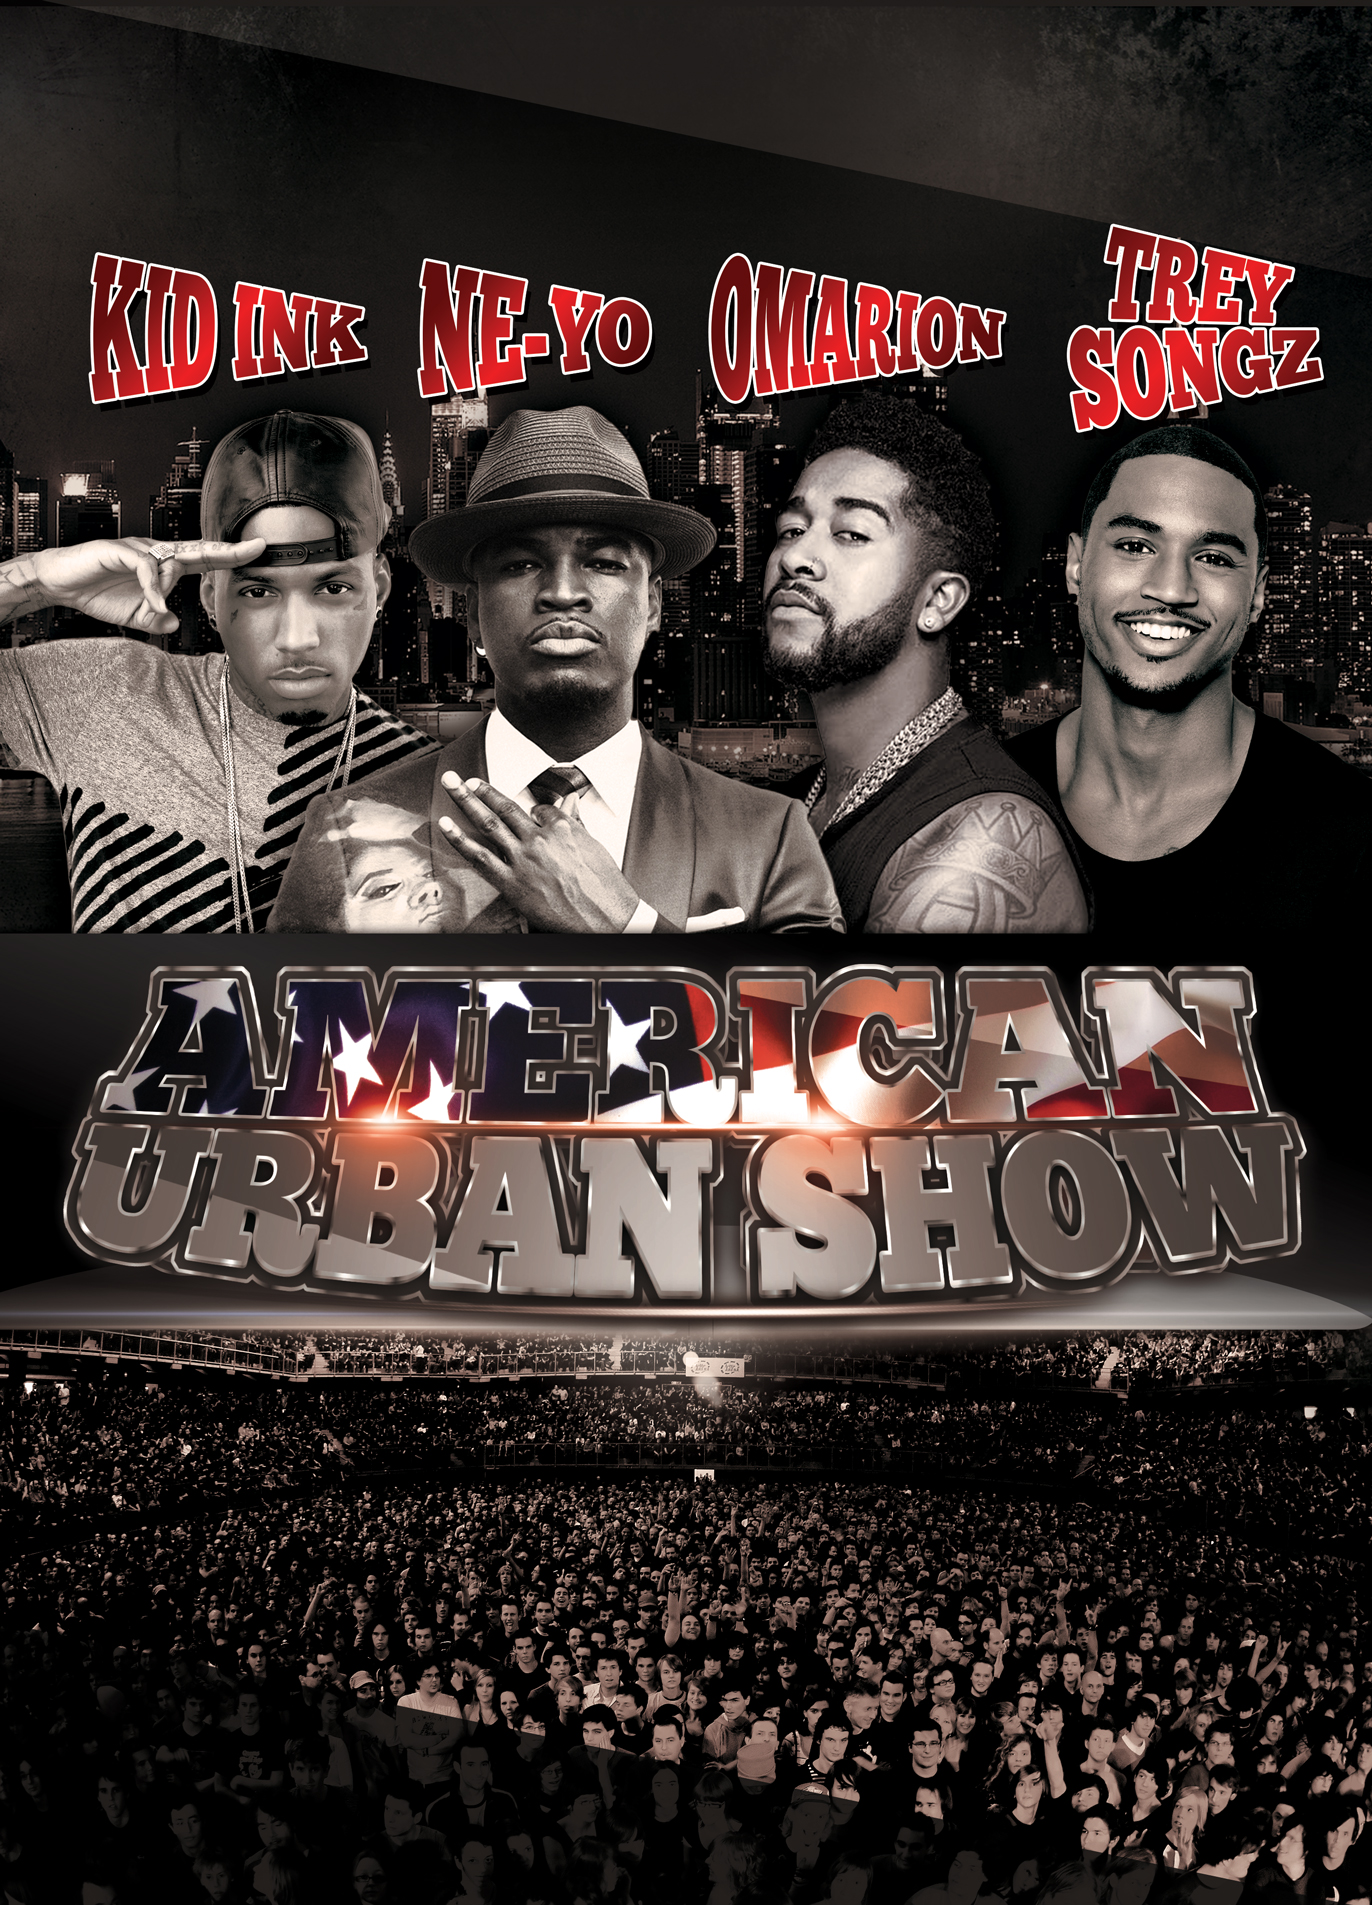 NE-YO OMARION TREY SONGZ KID INK